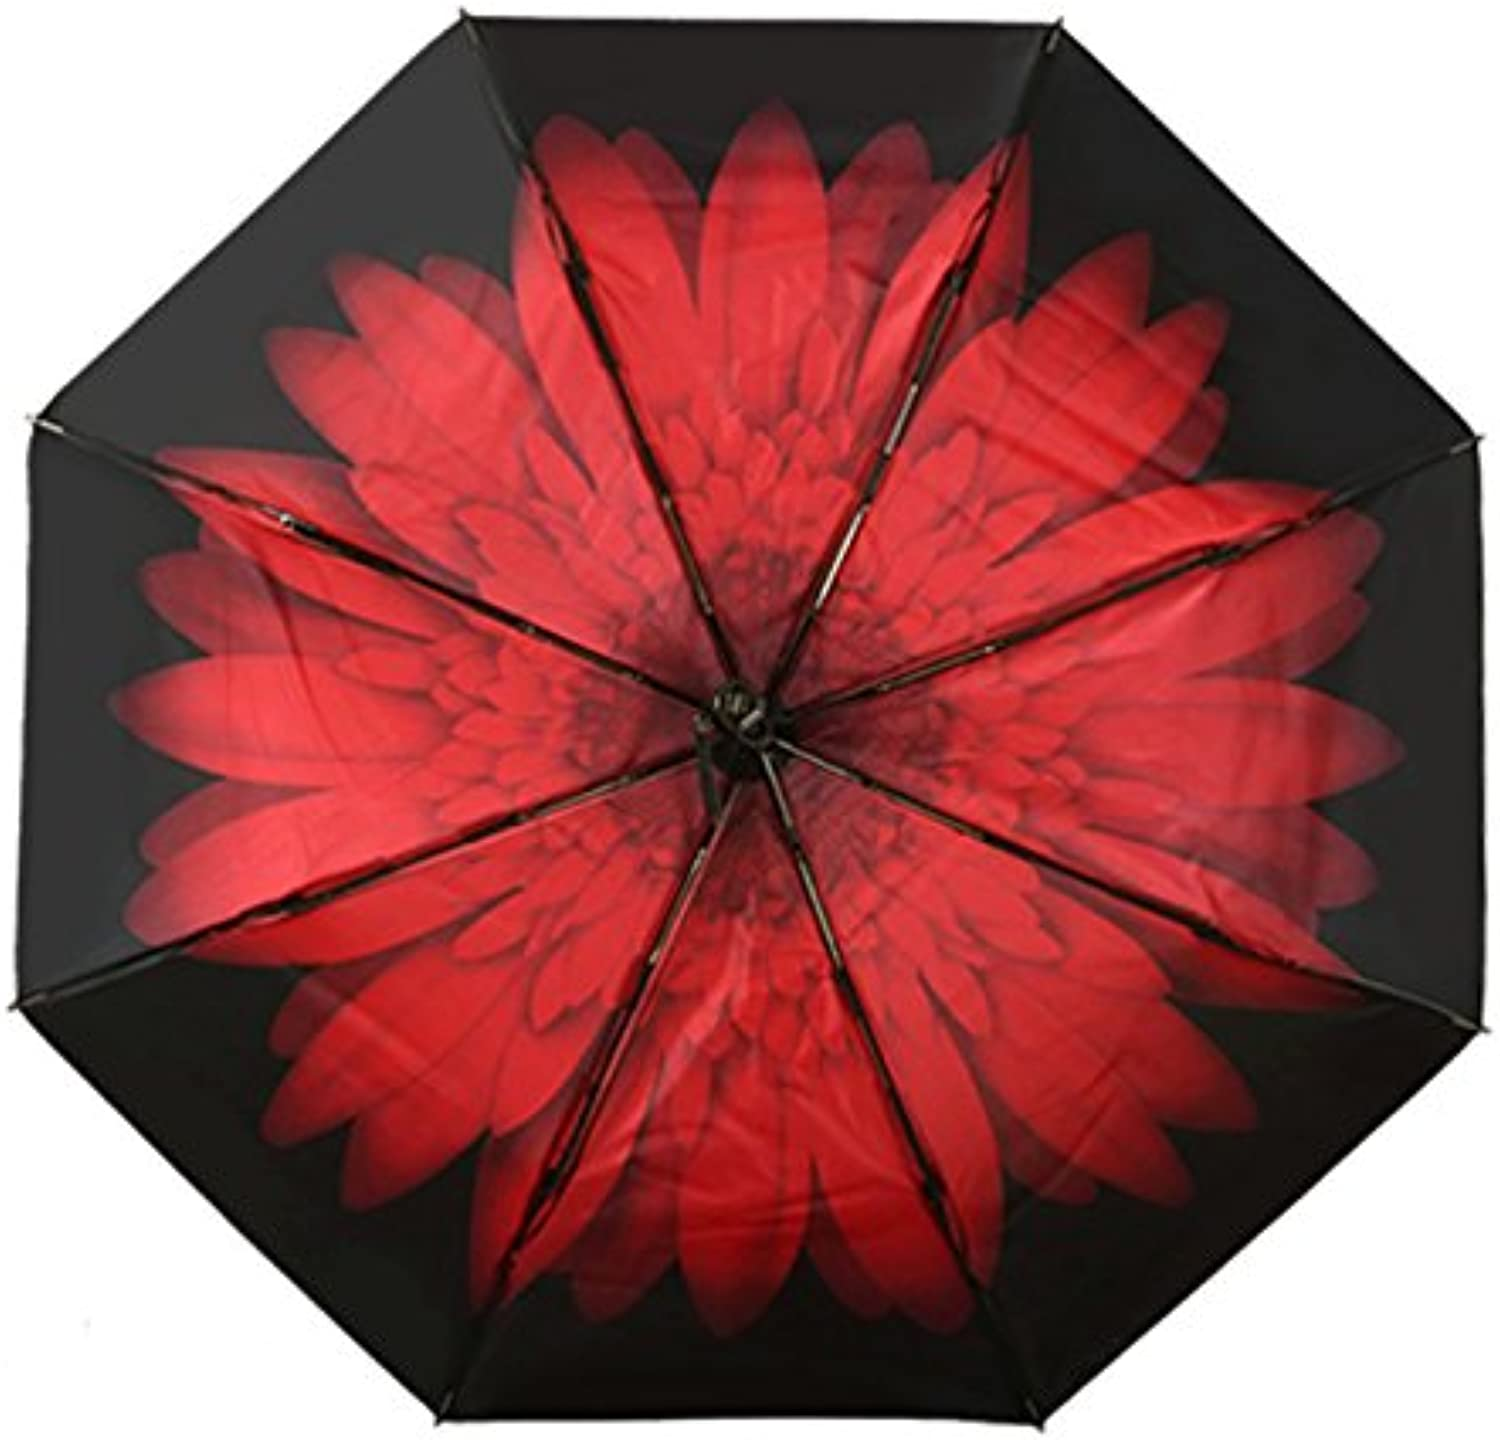 SSBY Double Layer Sun Umbrella Folding Sun Umbrella Black Glue Anti Ultrapurple Umbrella Clear Umbrellabright Red